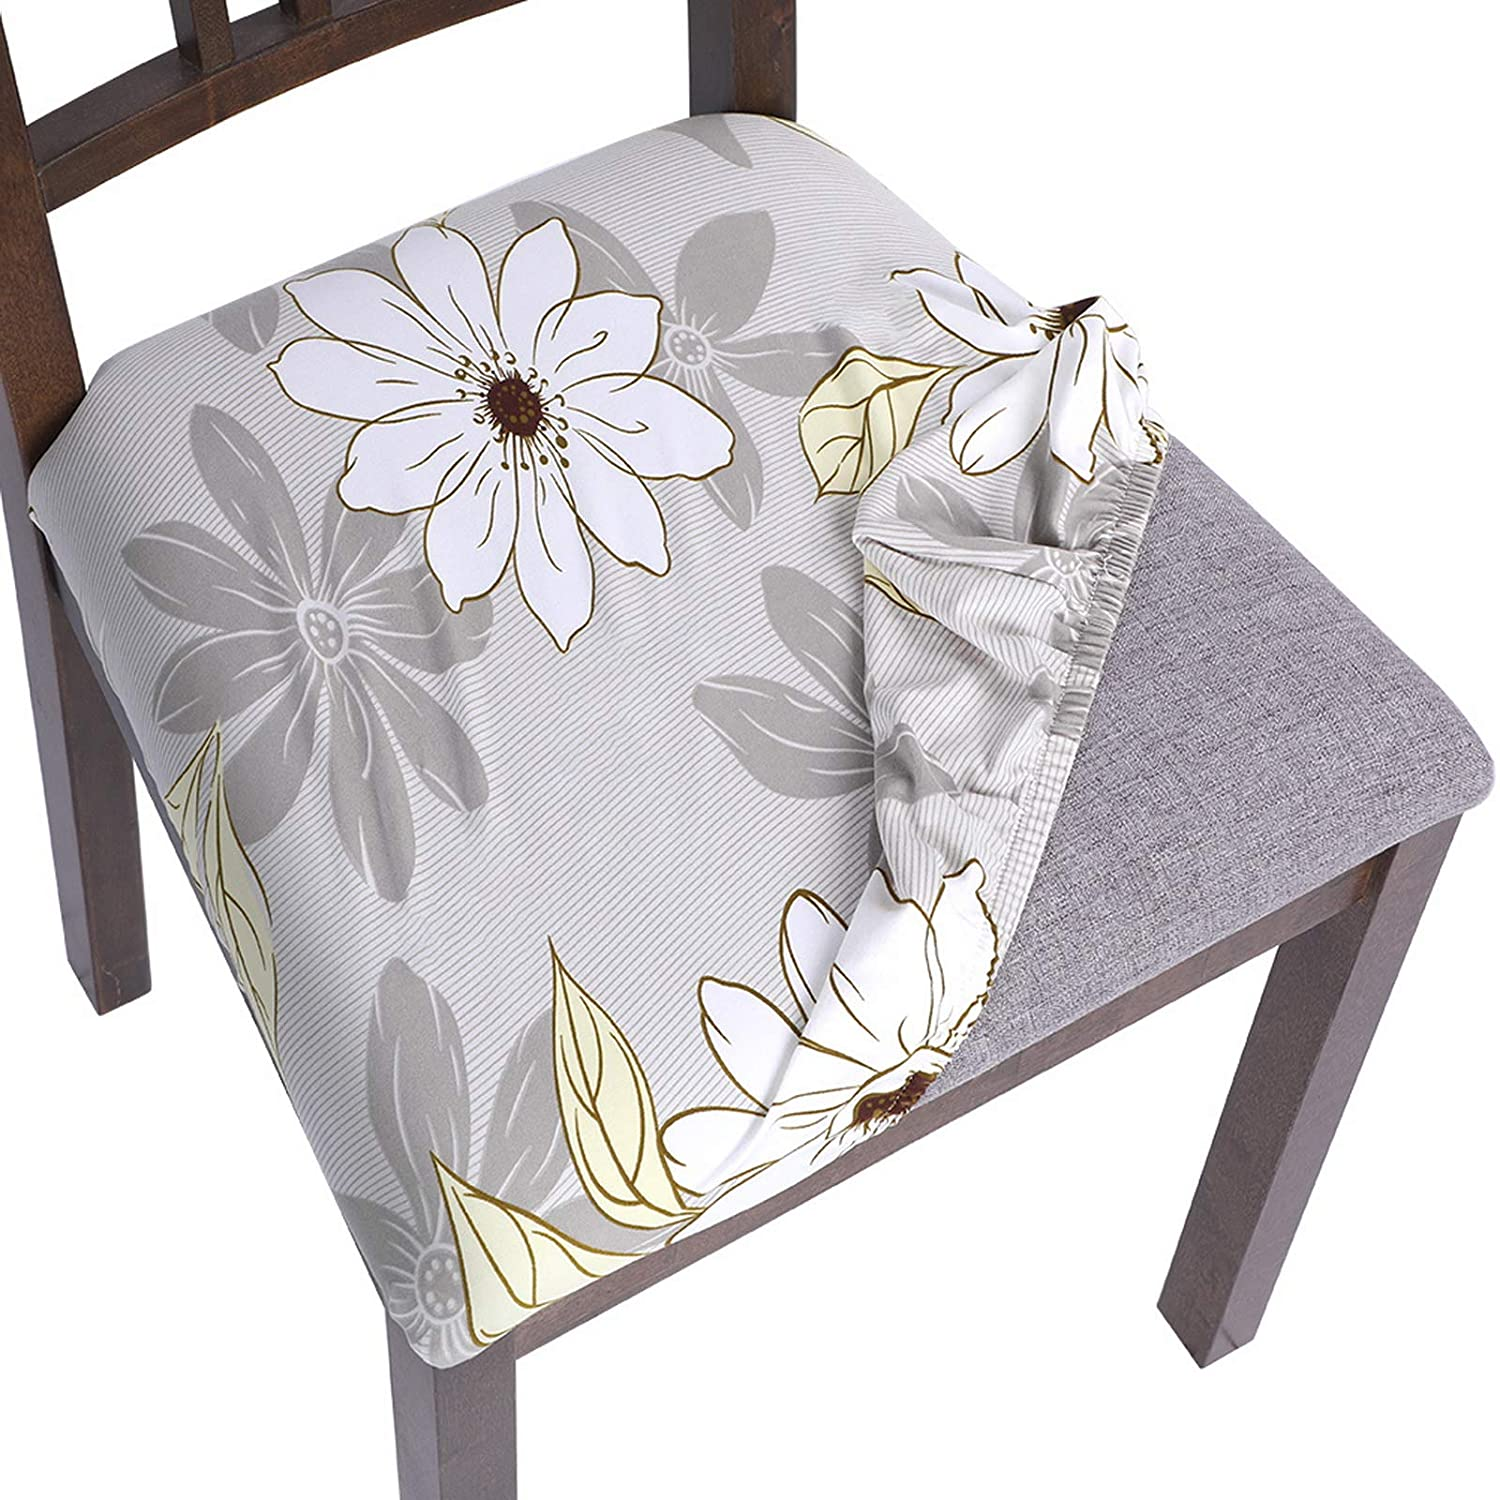 SearchI Chair seat Covers, Stretch Printed Dining Room Chair Seat Covers Removable Washable Chair Seat Covers Anti-Dust Chair Seat Cushion Slipcovers for Dining Room, Kitchen(flower1, 4pcs)